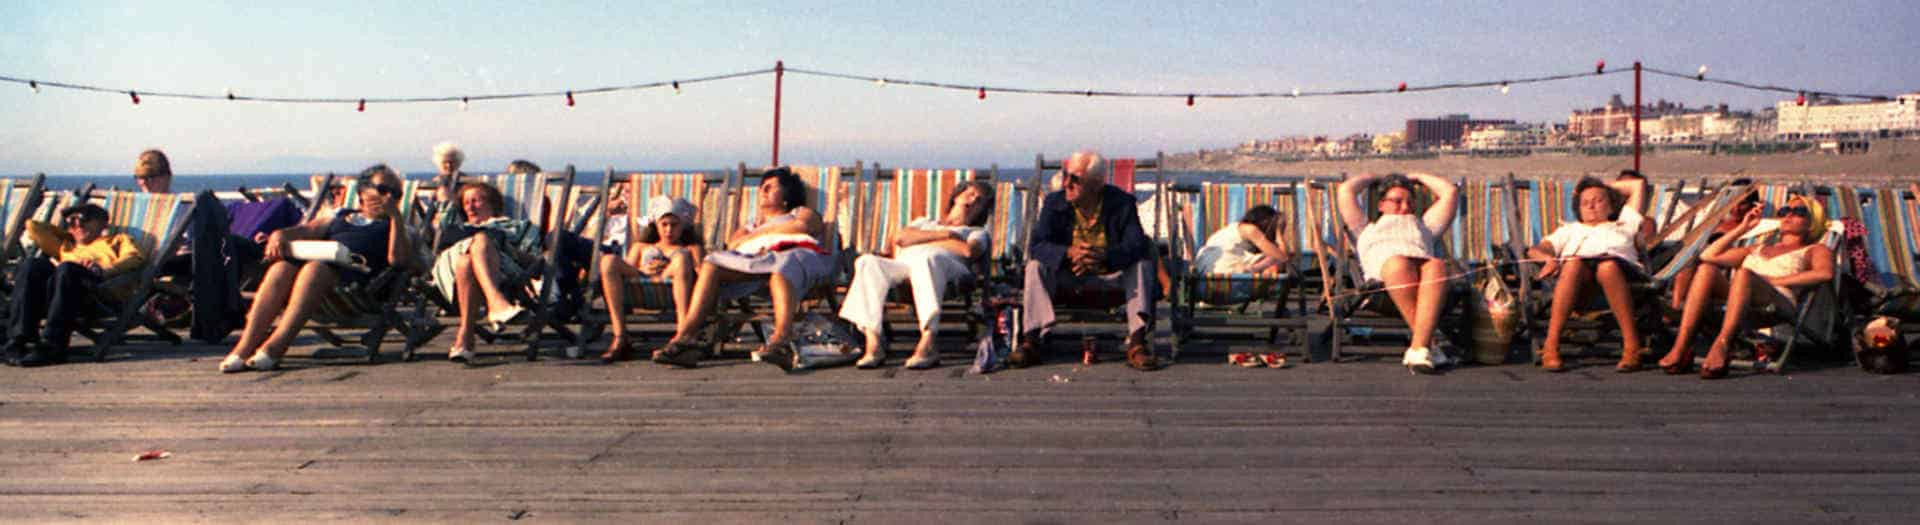 people relaxing on deckchairs on a pier in the 1970's